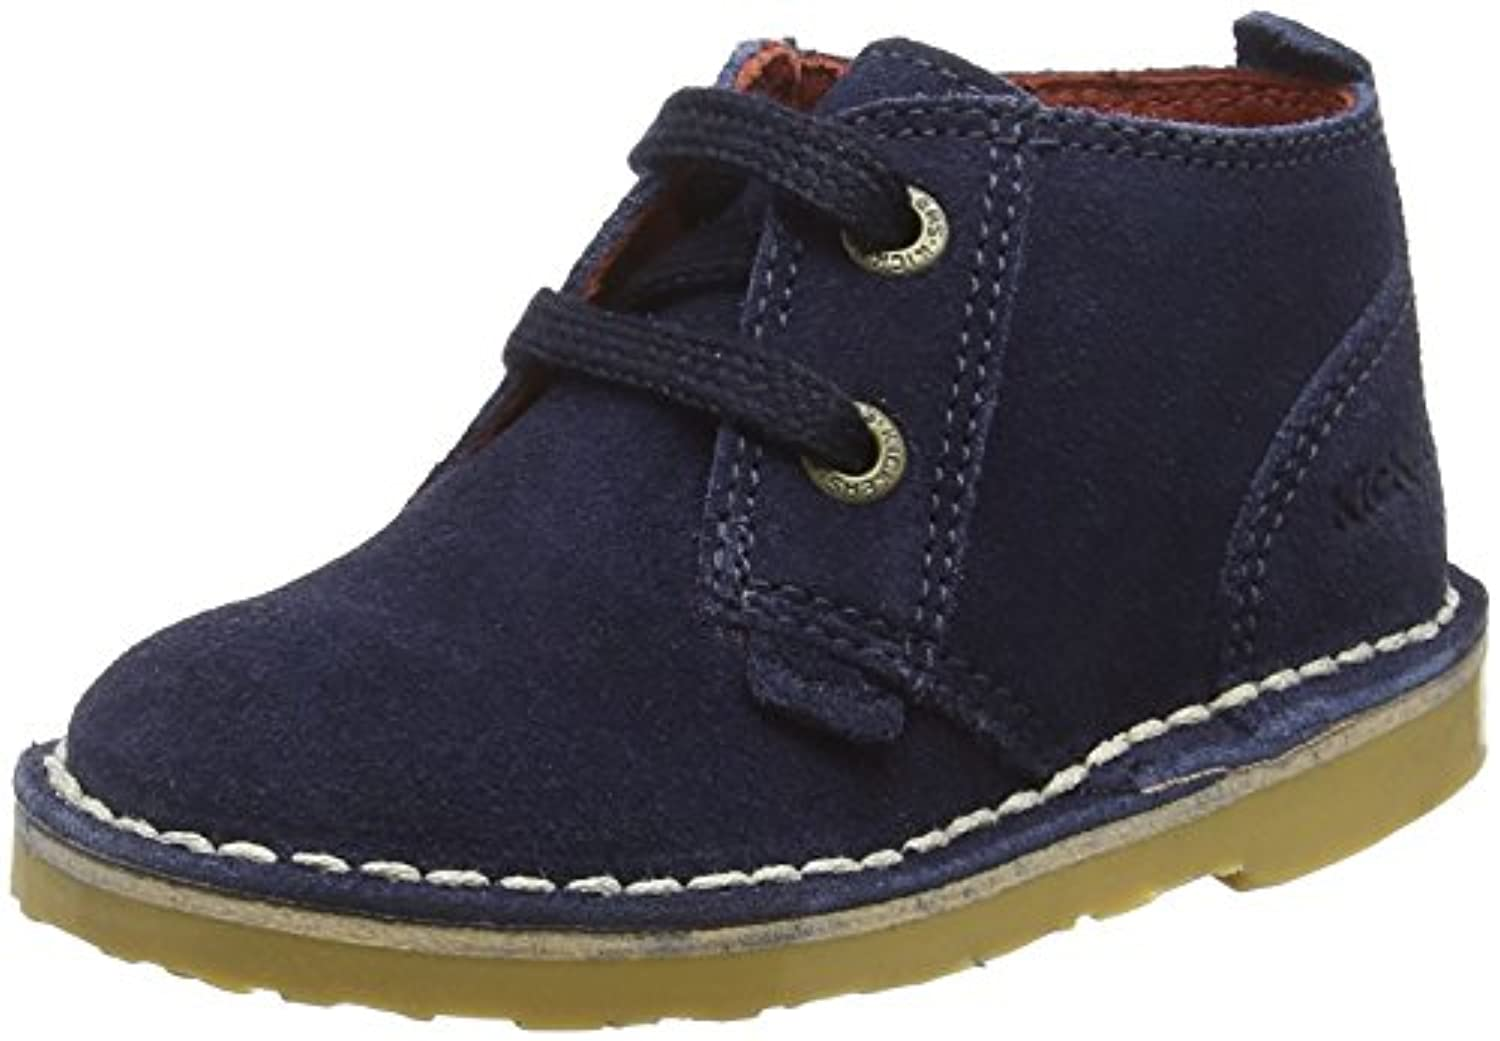 Kickers Boys' Adlar Ankle Boots, Blue (Dark Blue), 6 Child UK 23 EU